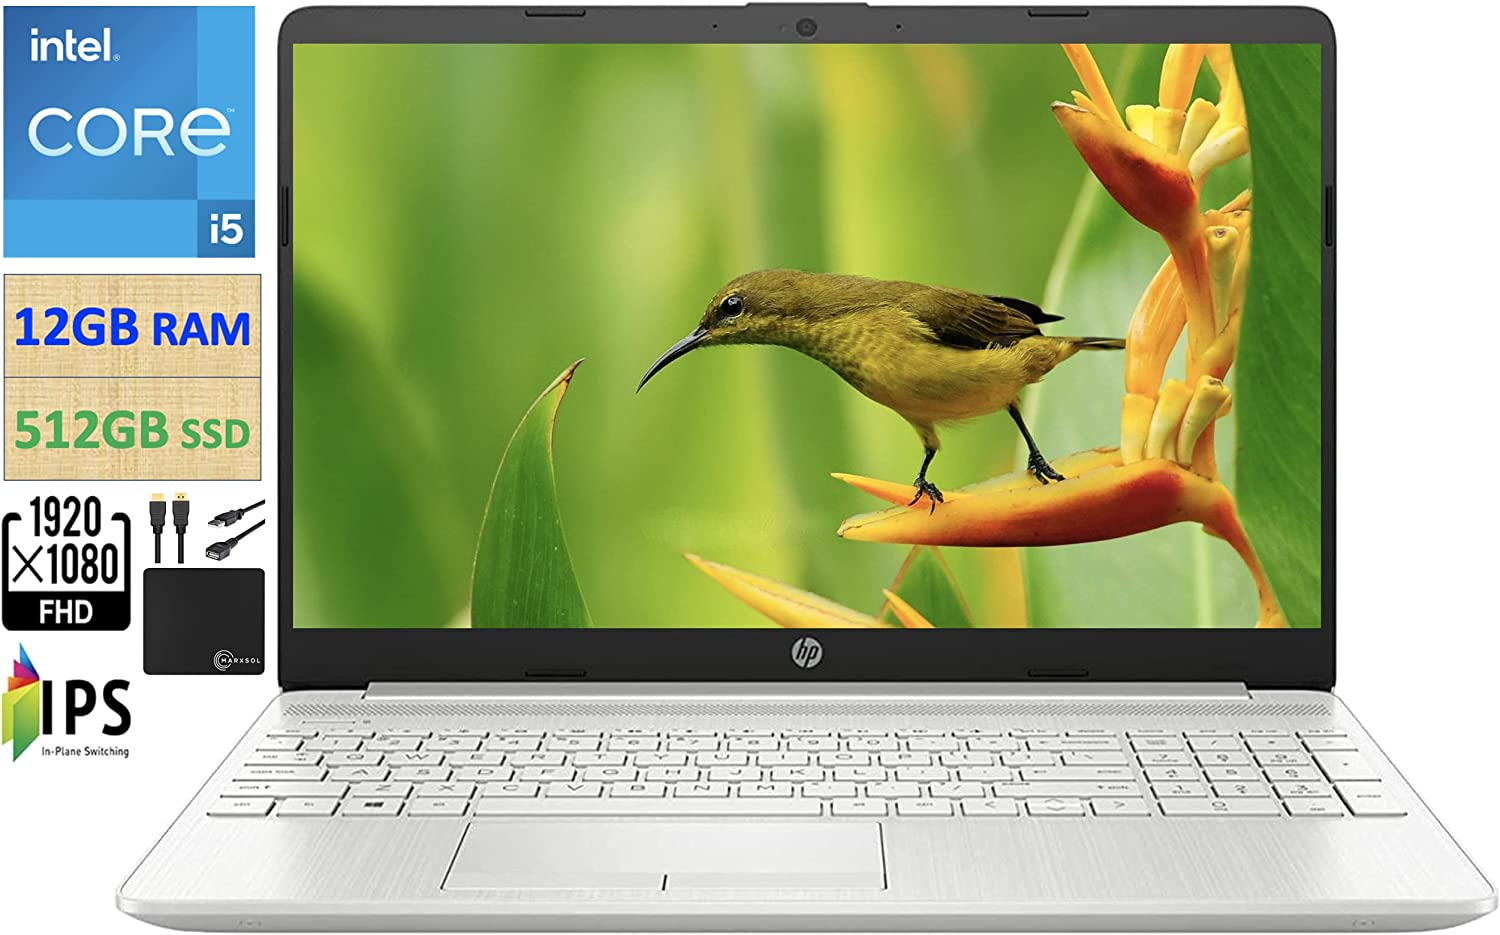 """2021 Flagship HP 15.6"""" FHD IPS Laptop Computer, Intel i5-1135G7 Quad-Core (Up to 4.2GHz, Beats Intel i7-1065G7), 12GB RAM, 512GB PCIe SSD, HD Webcam, WiFi 5, Bluetooth 4.2, Win10, w/Marxsol Cables"""